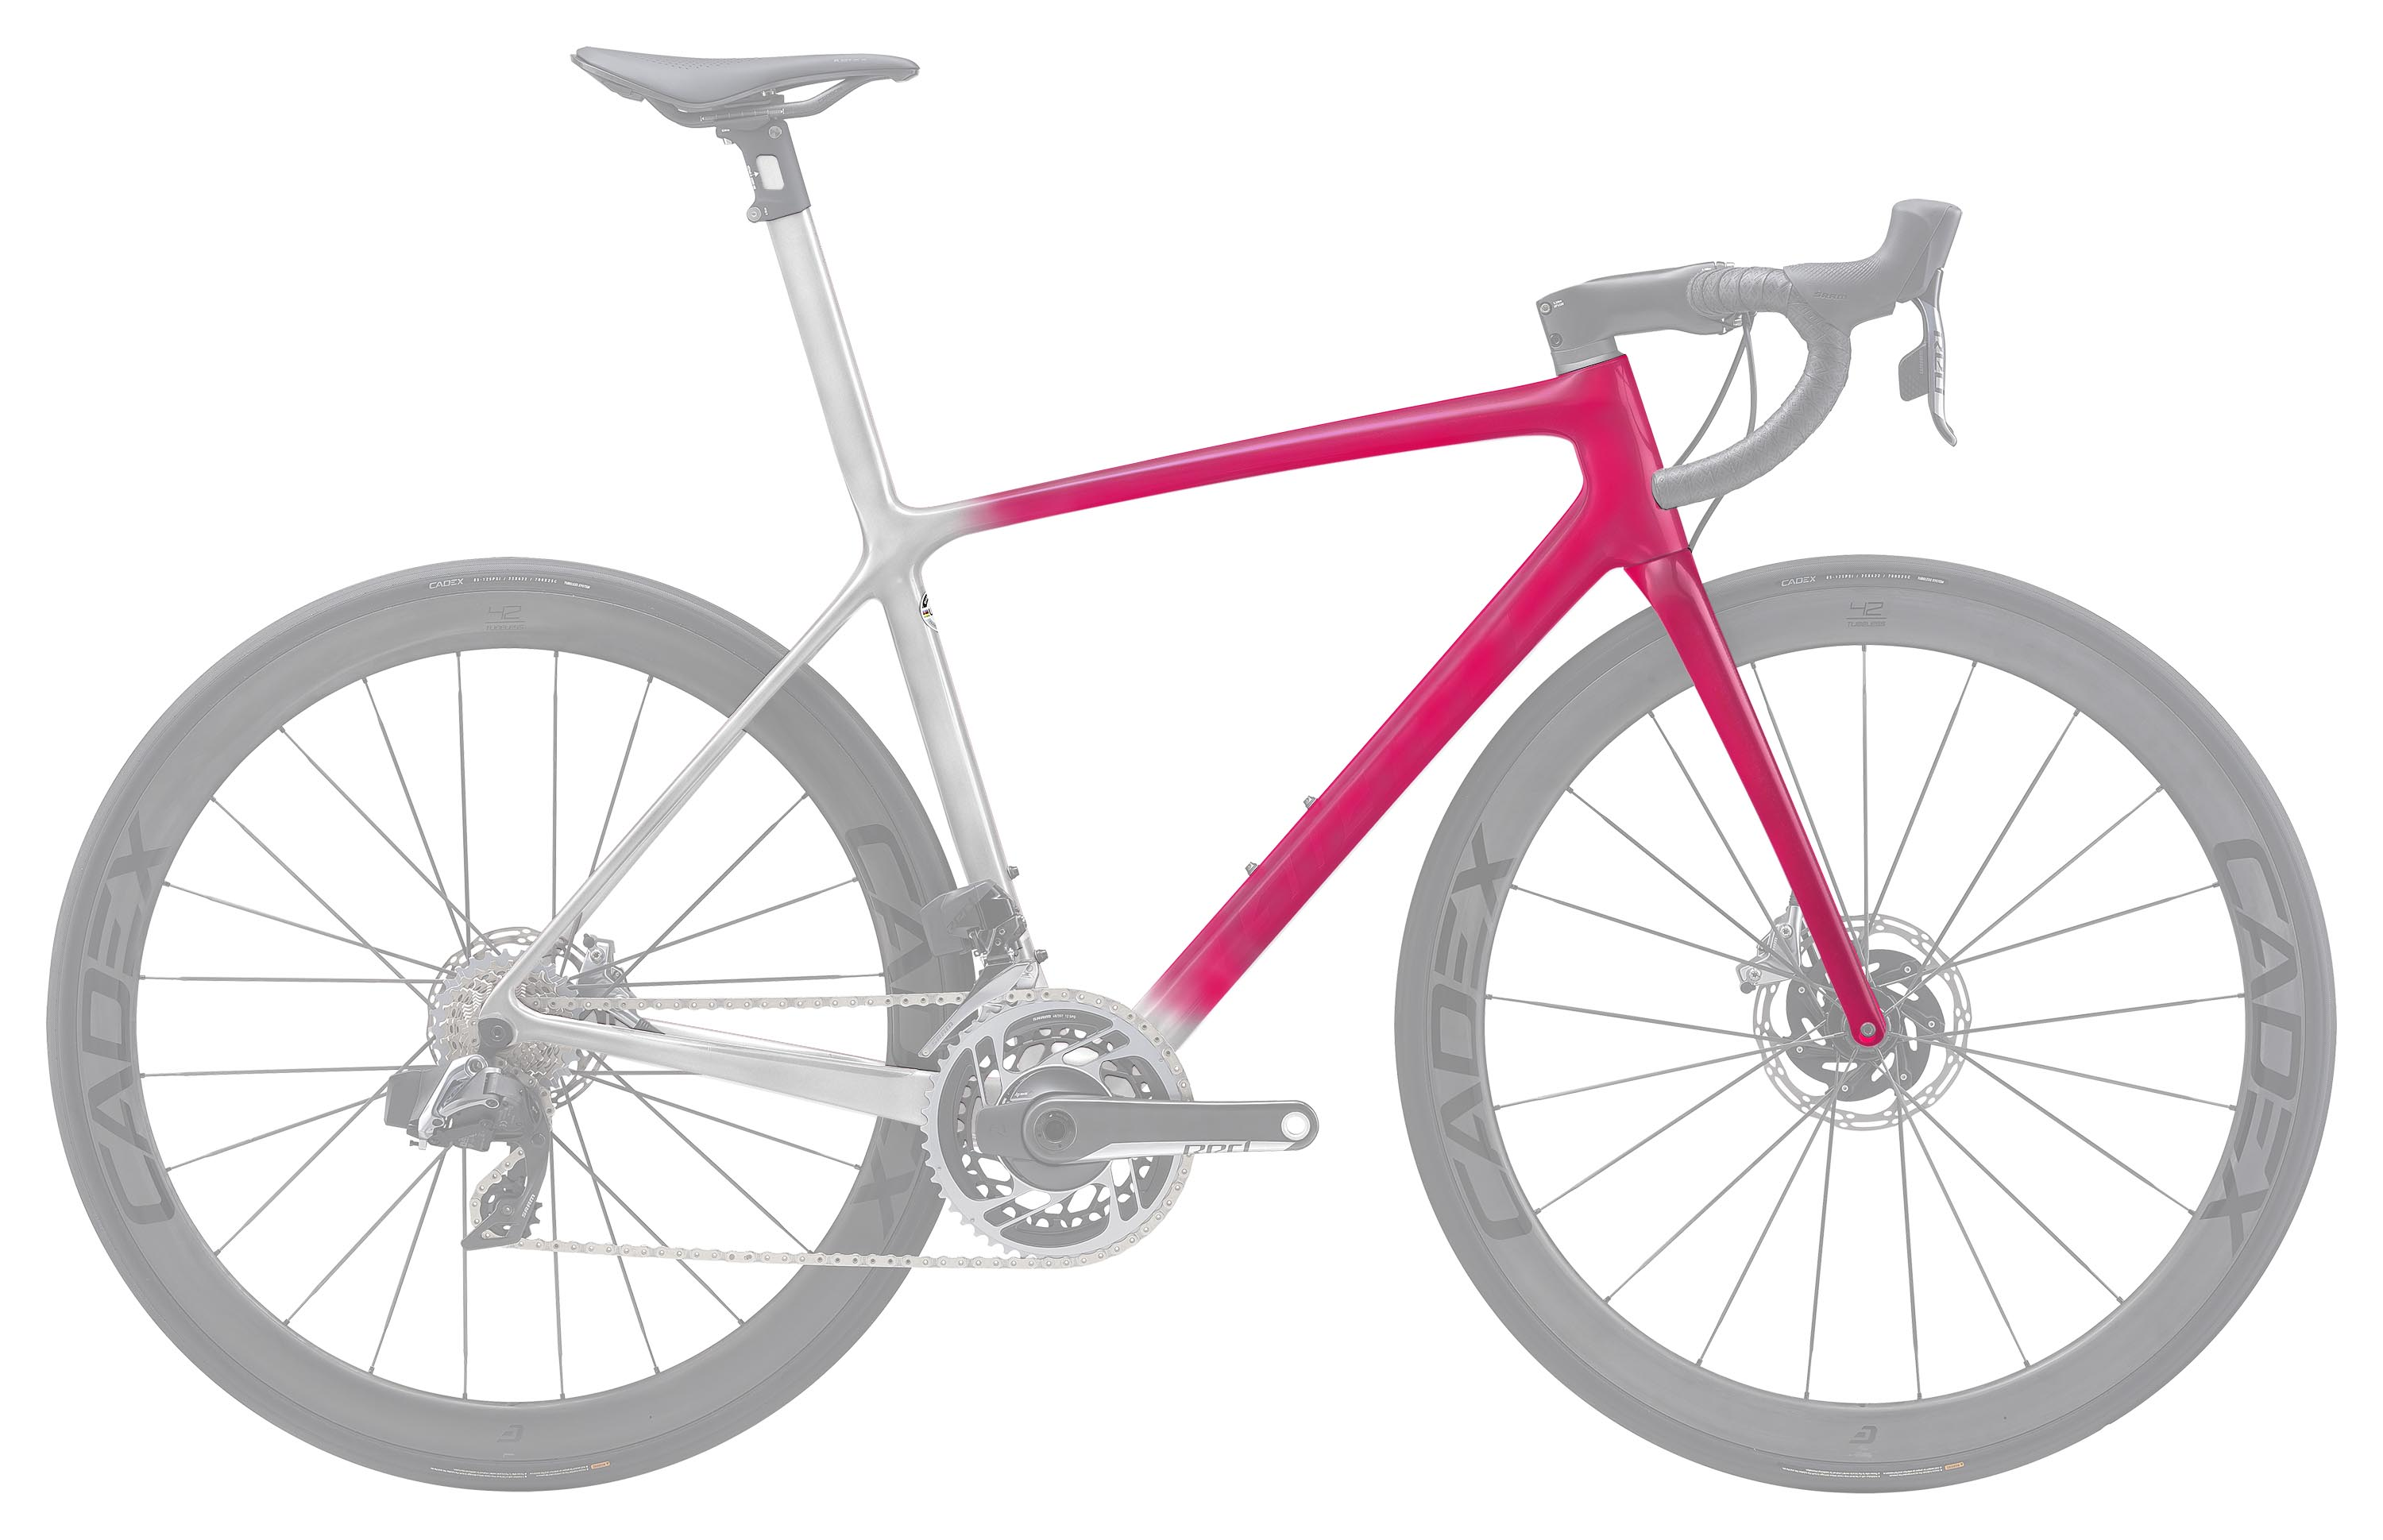 TCR ADVANCED SL DISC 塗裝自由選 TYPE. 1 Plus